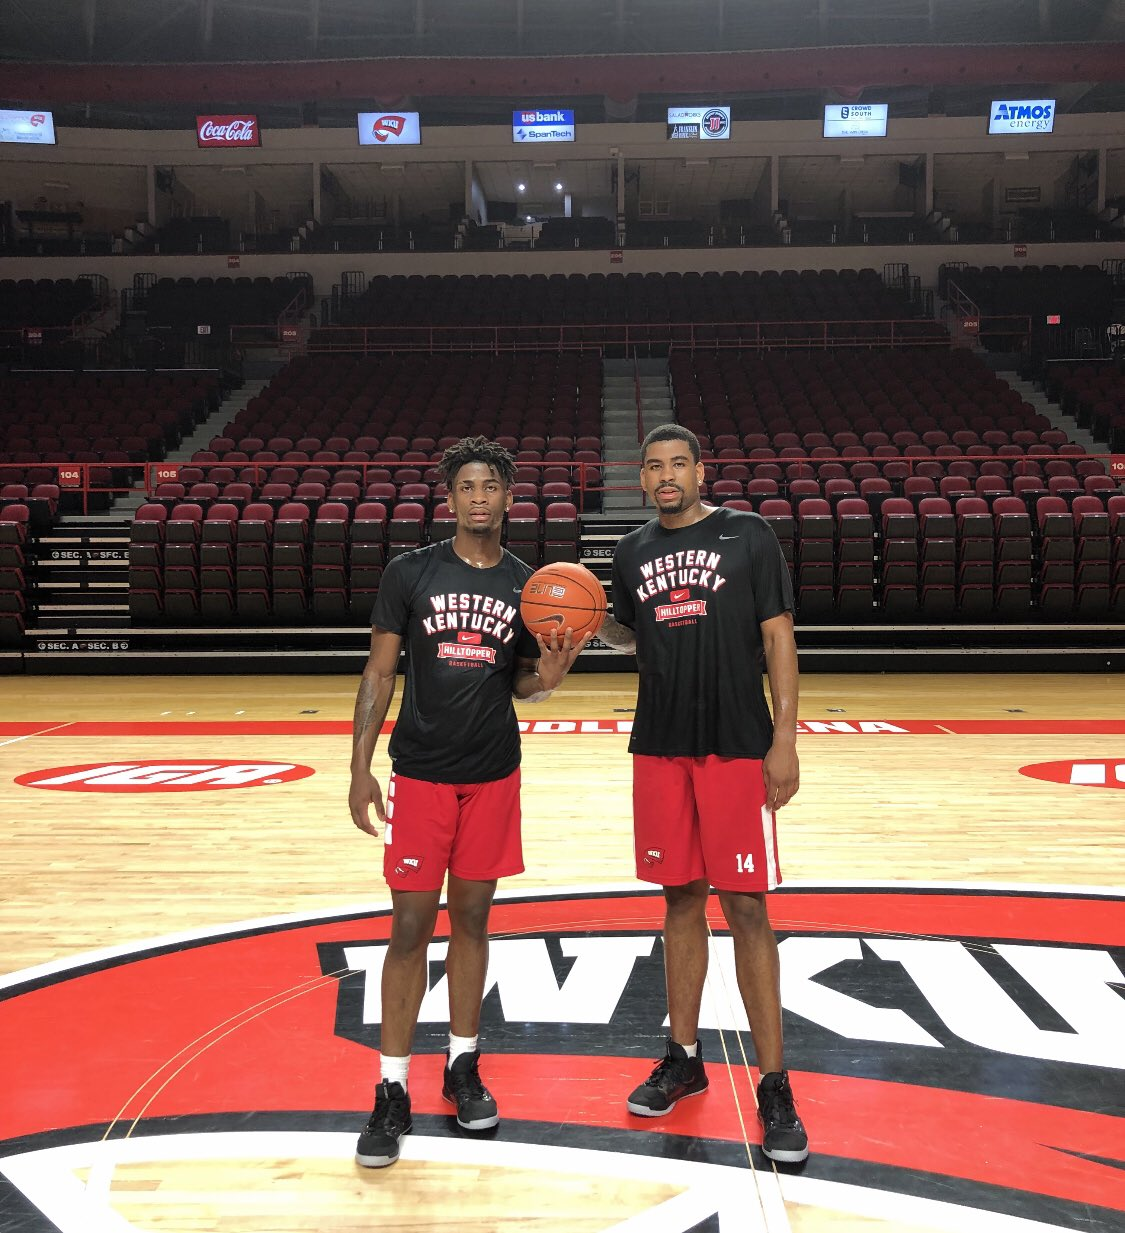 Miguel Tour 2020 WKU Recruiting: The Miguel Brothers become top 2020 targets